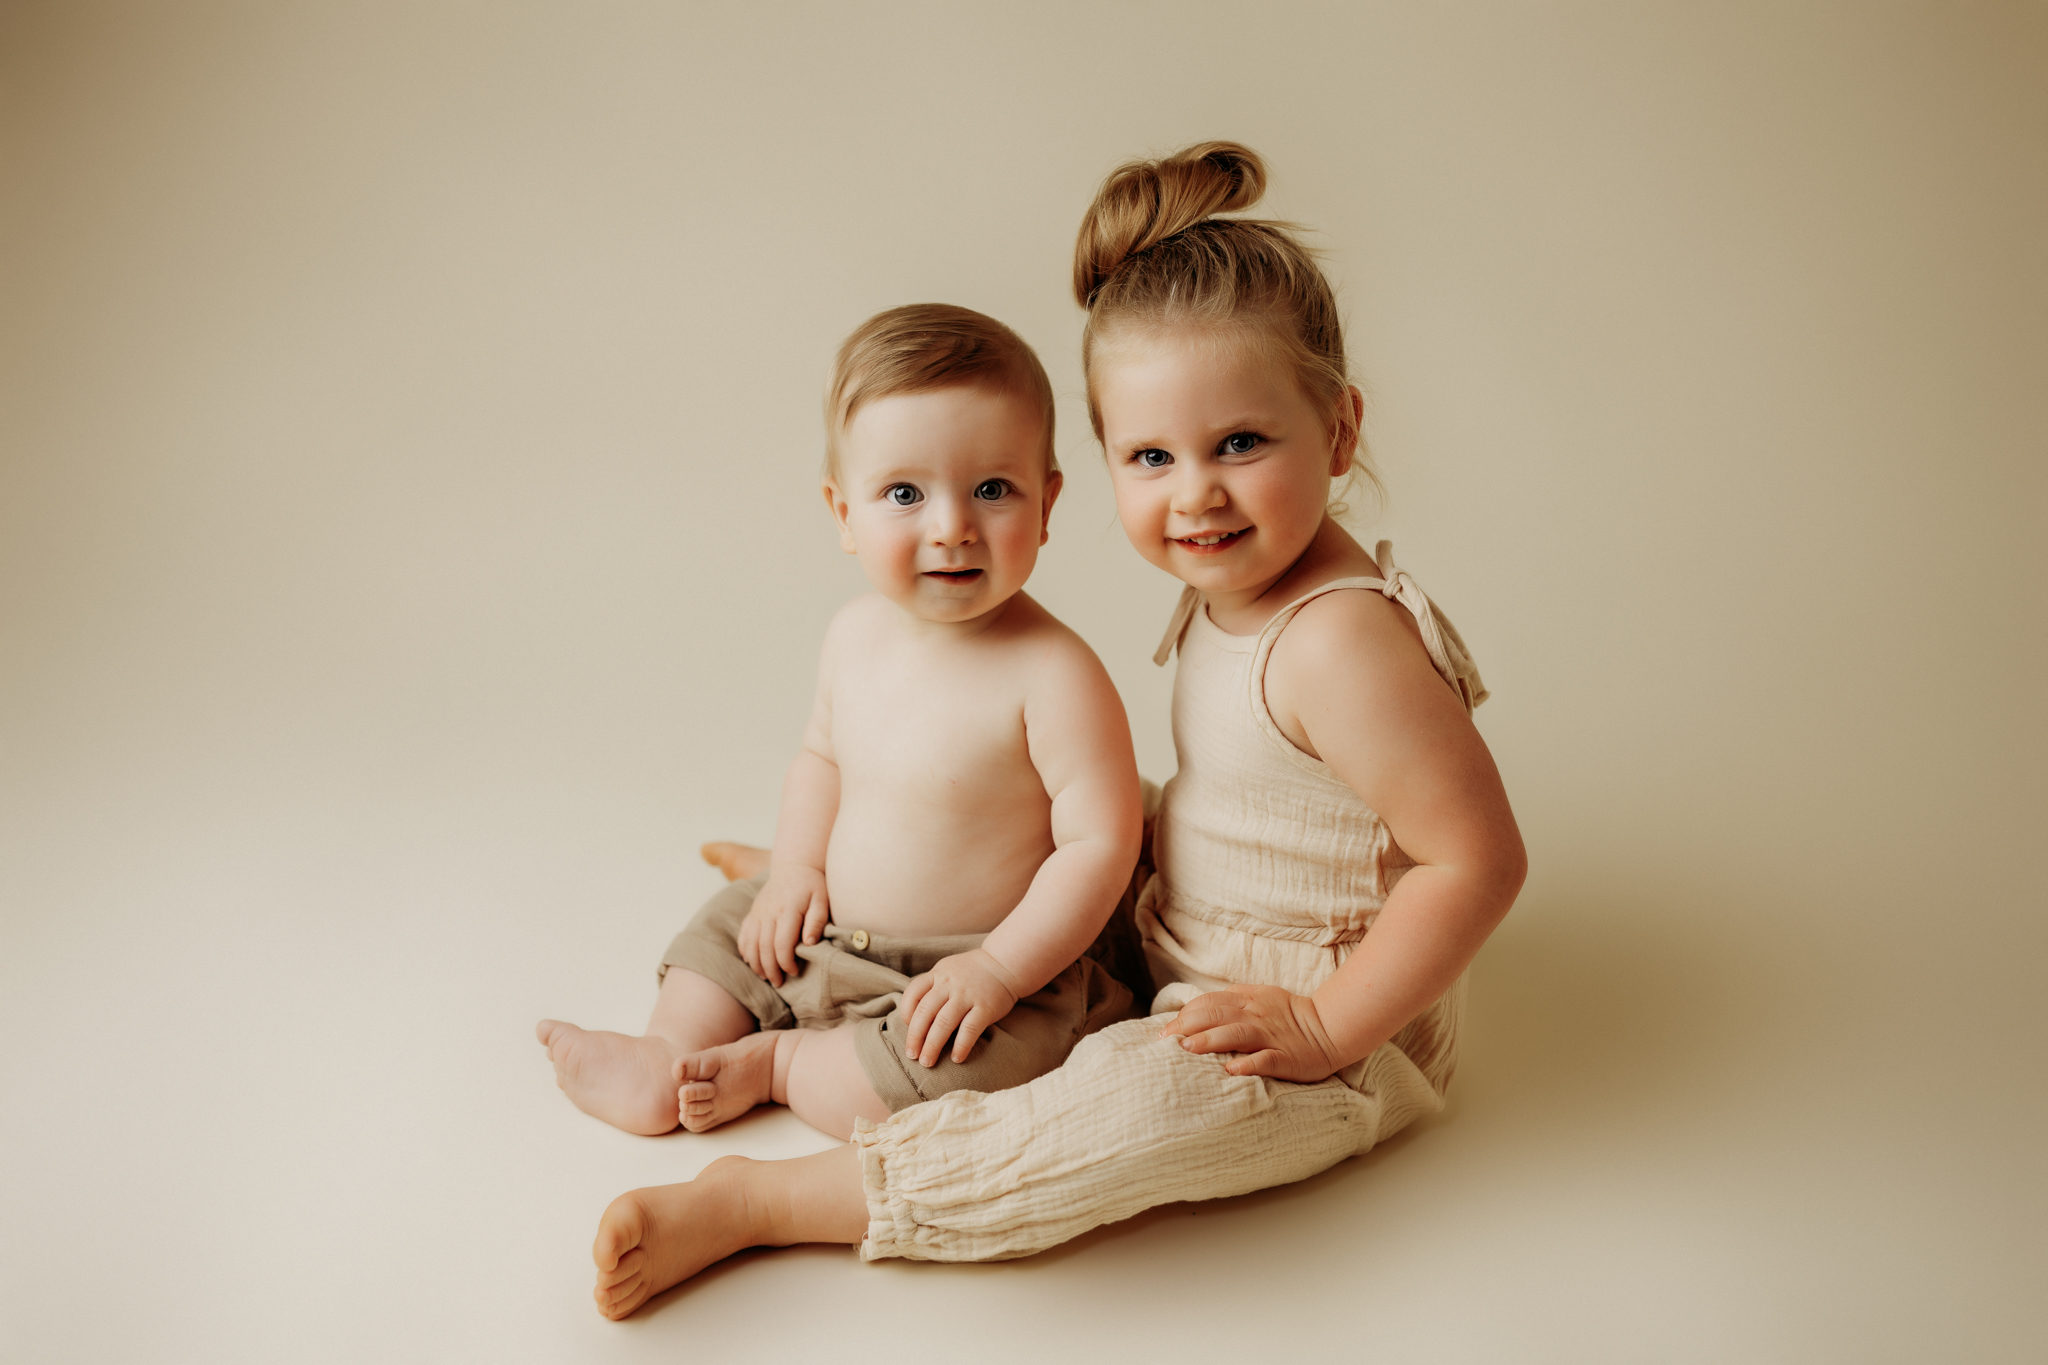 siblings posed next to eachother smiling at camera on cream backdrop